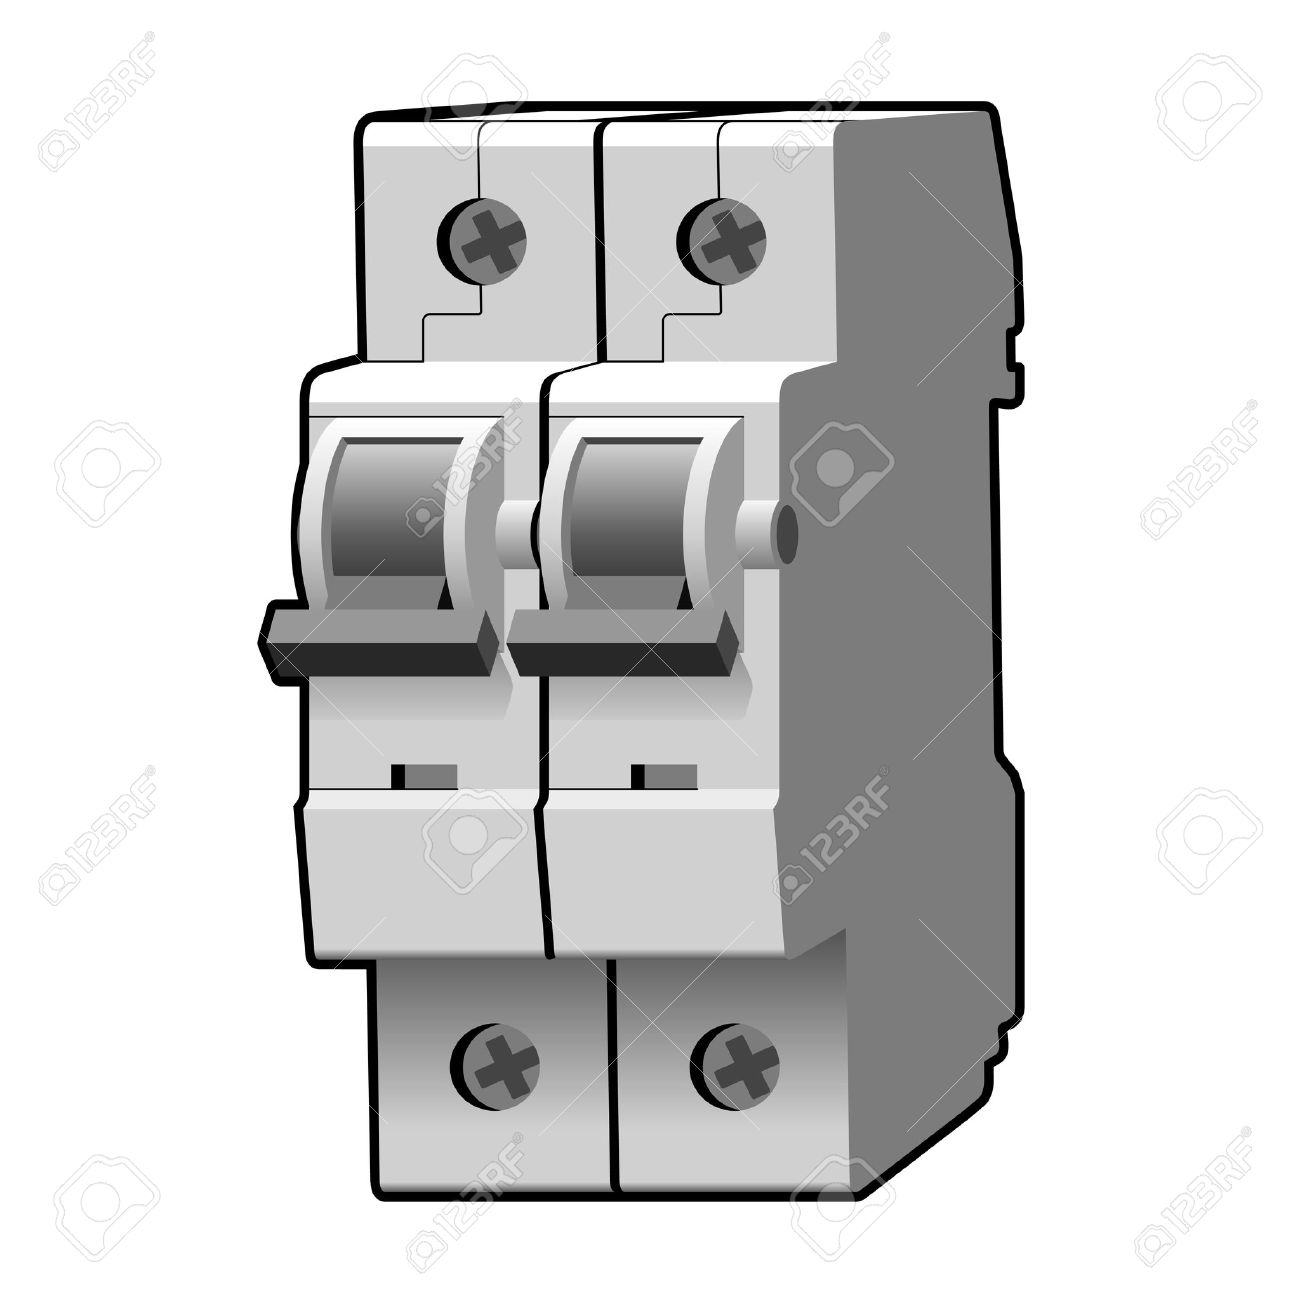 Molded case circuit breaker royalty free cliparts vectors and molded case circuit breaker stock vector 69148713 buycottarizona Images